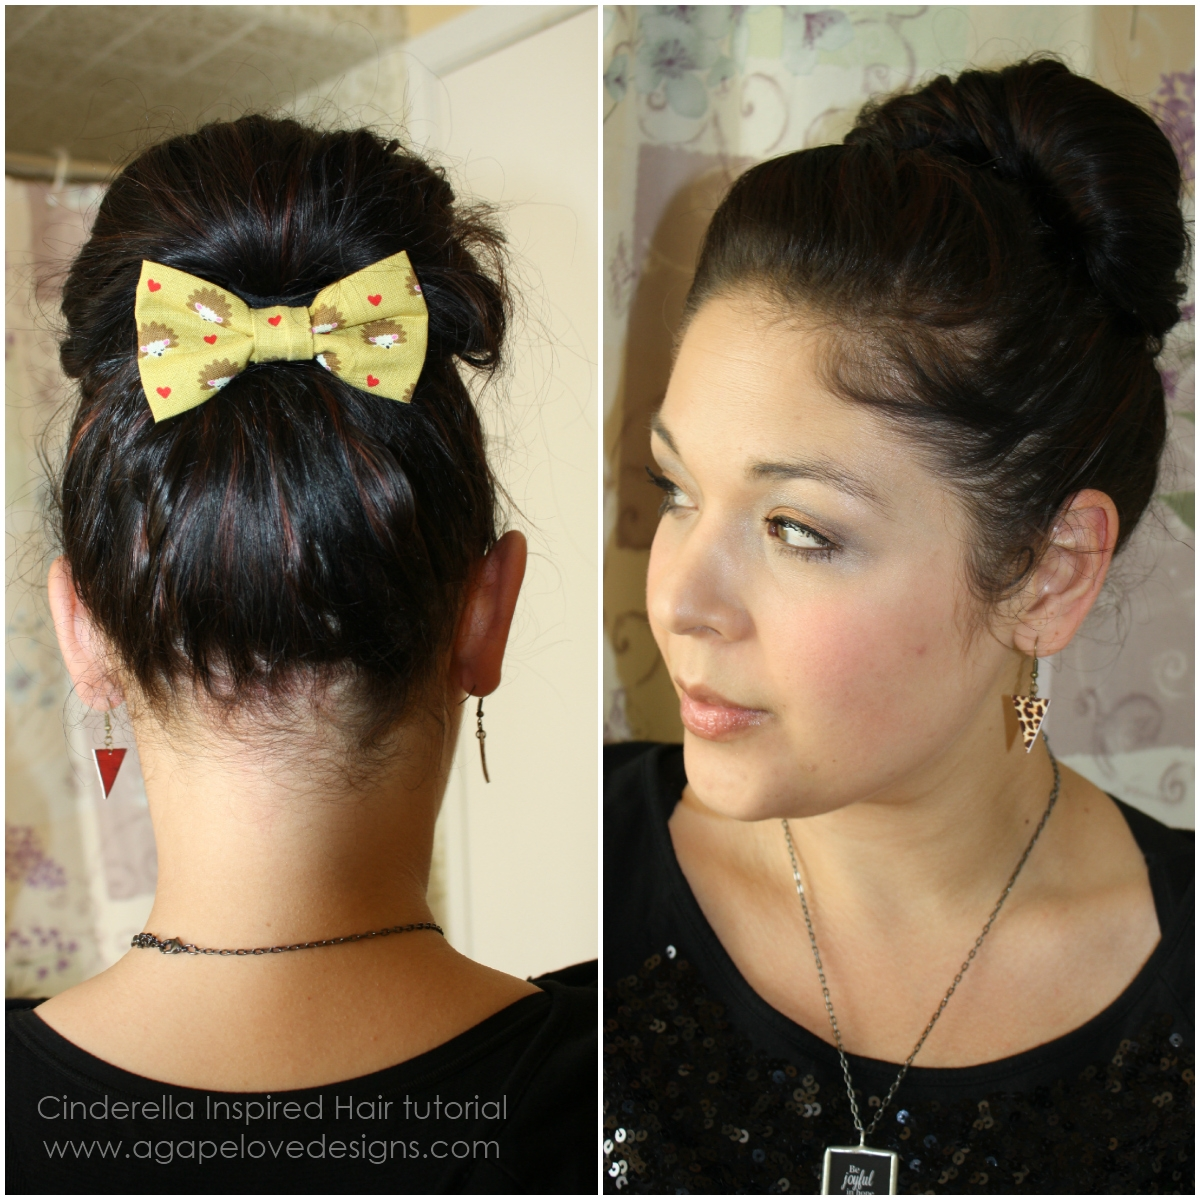 Agape love designs cinderella inspired hair tutorial what do you think baditri Gallery